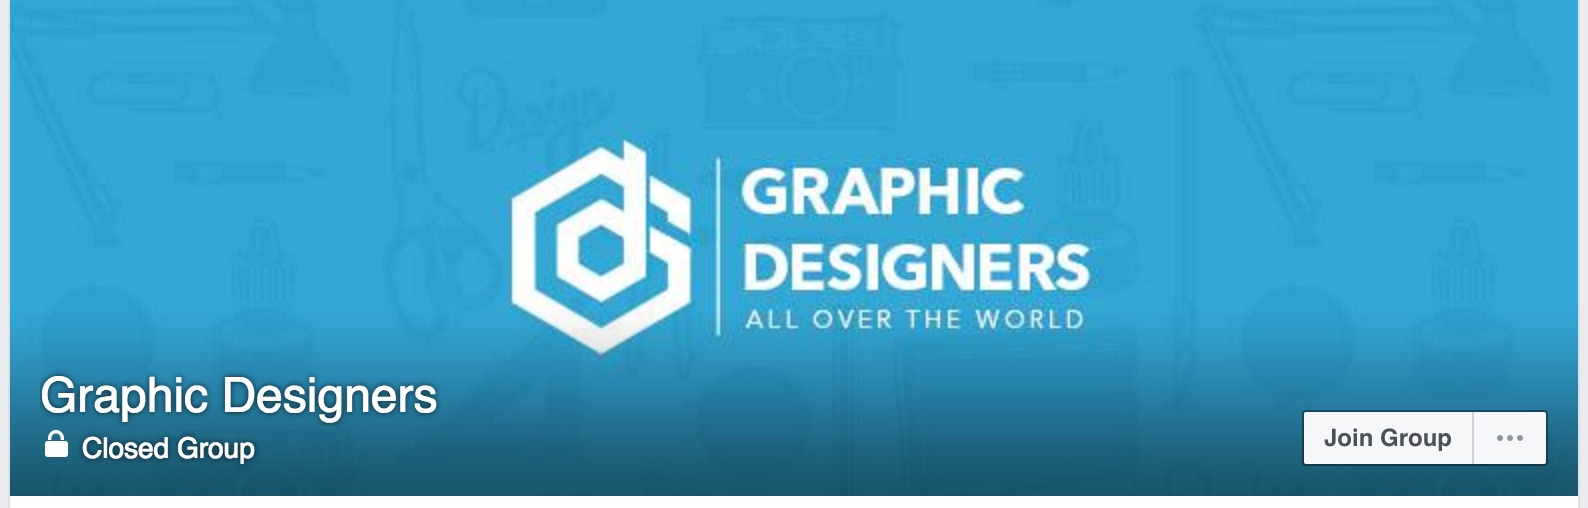 grup facebook Graphic Designers